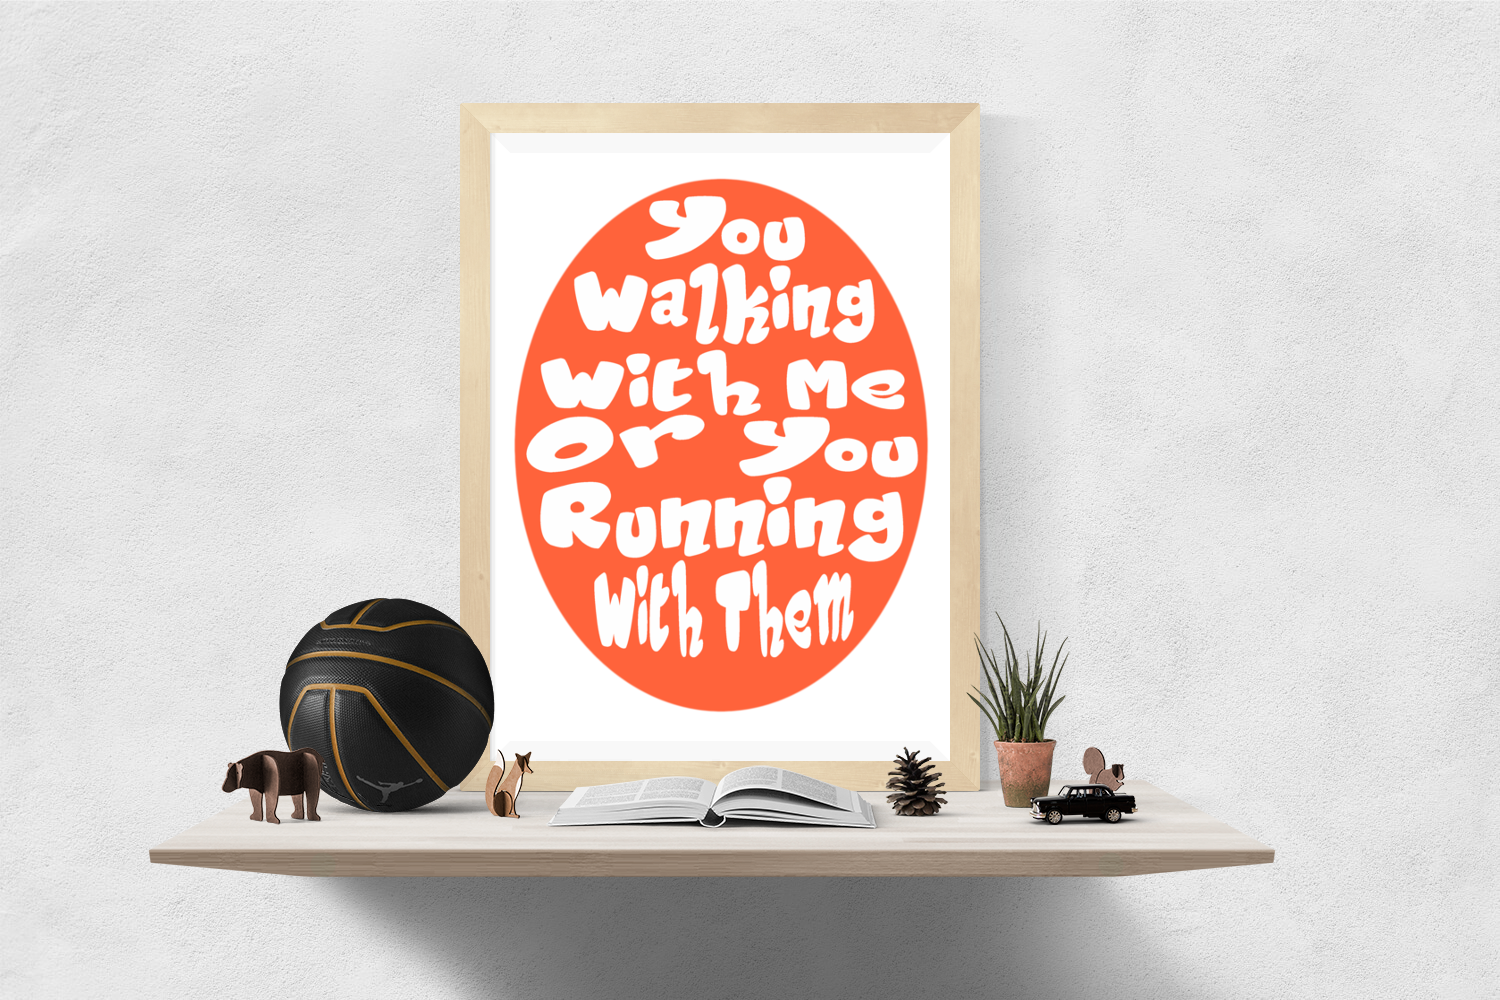 Printable Arts, Esty, Wall Art Prints, Printable